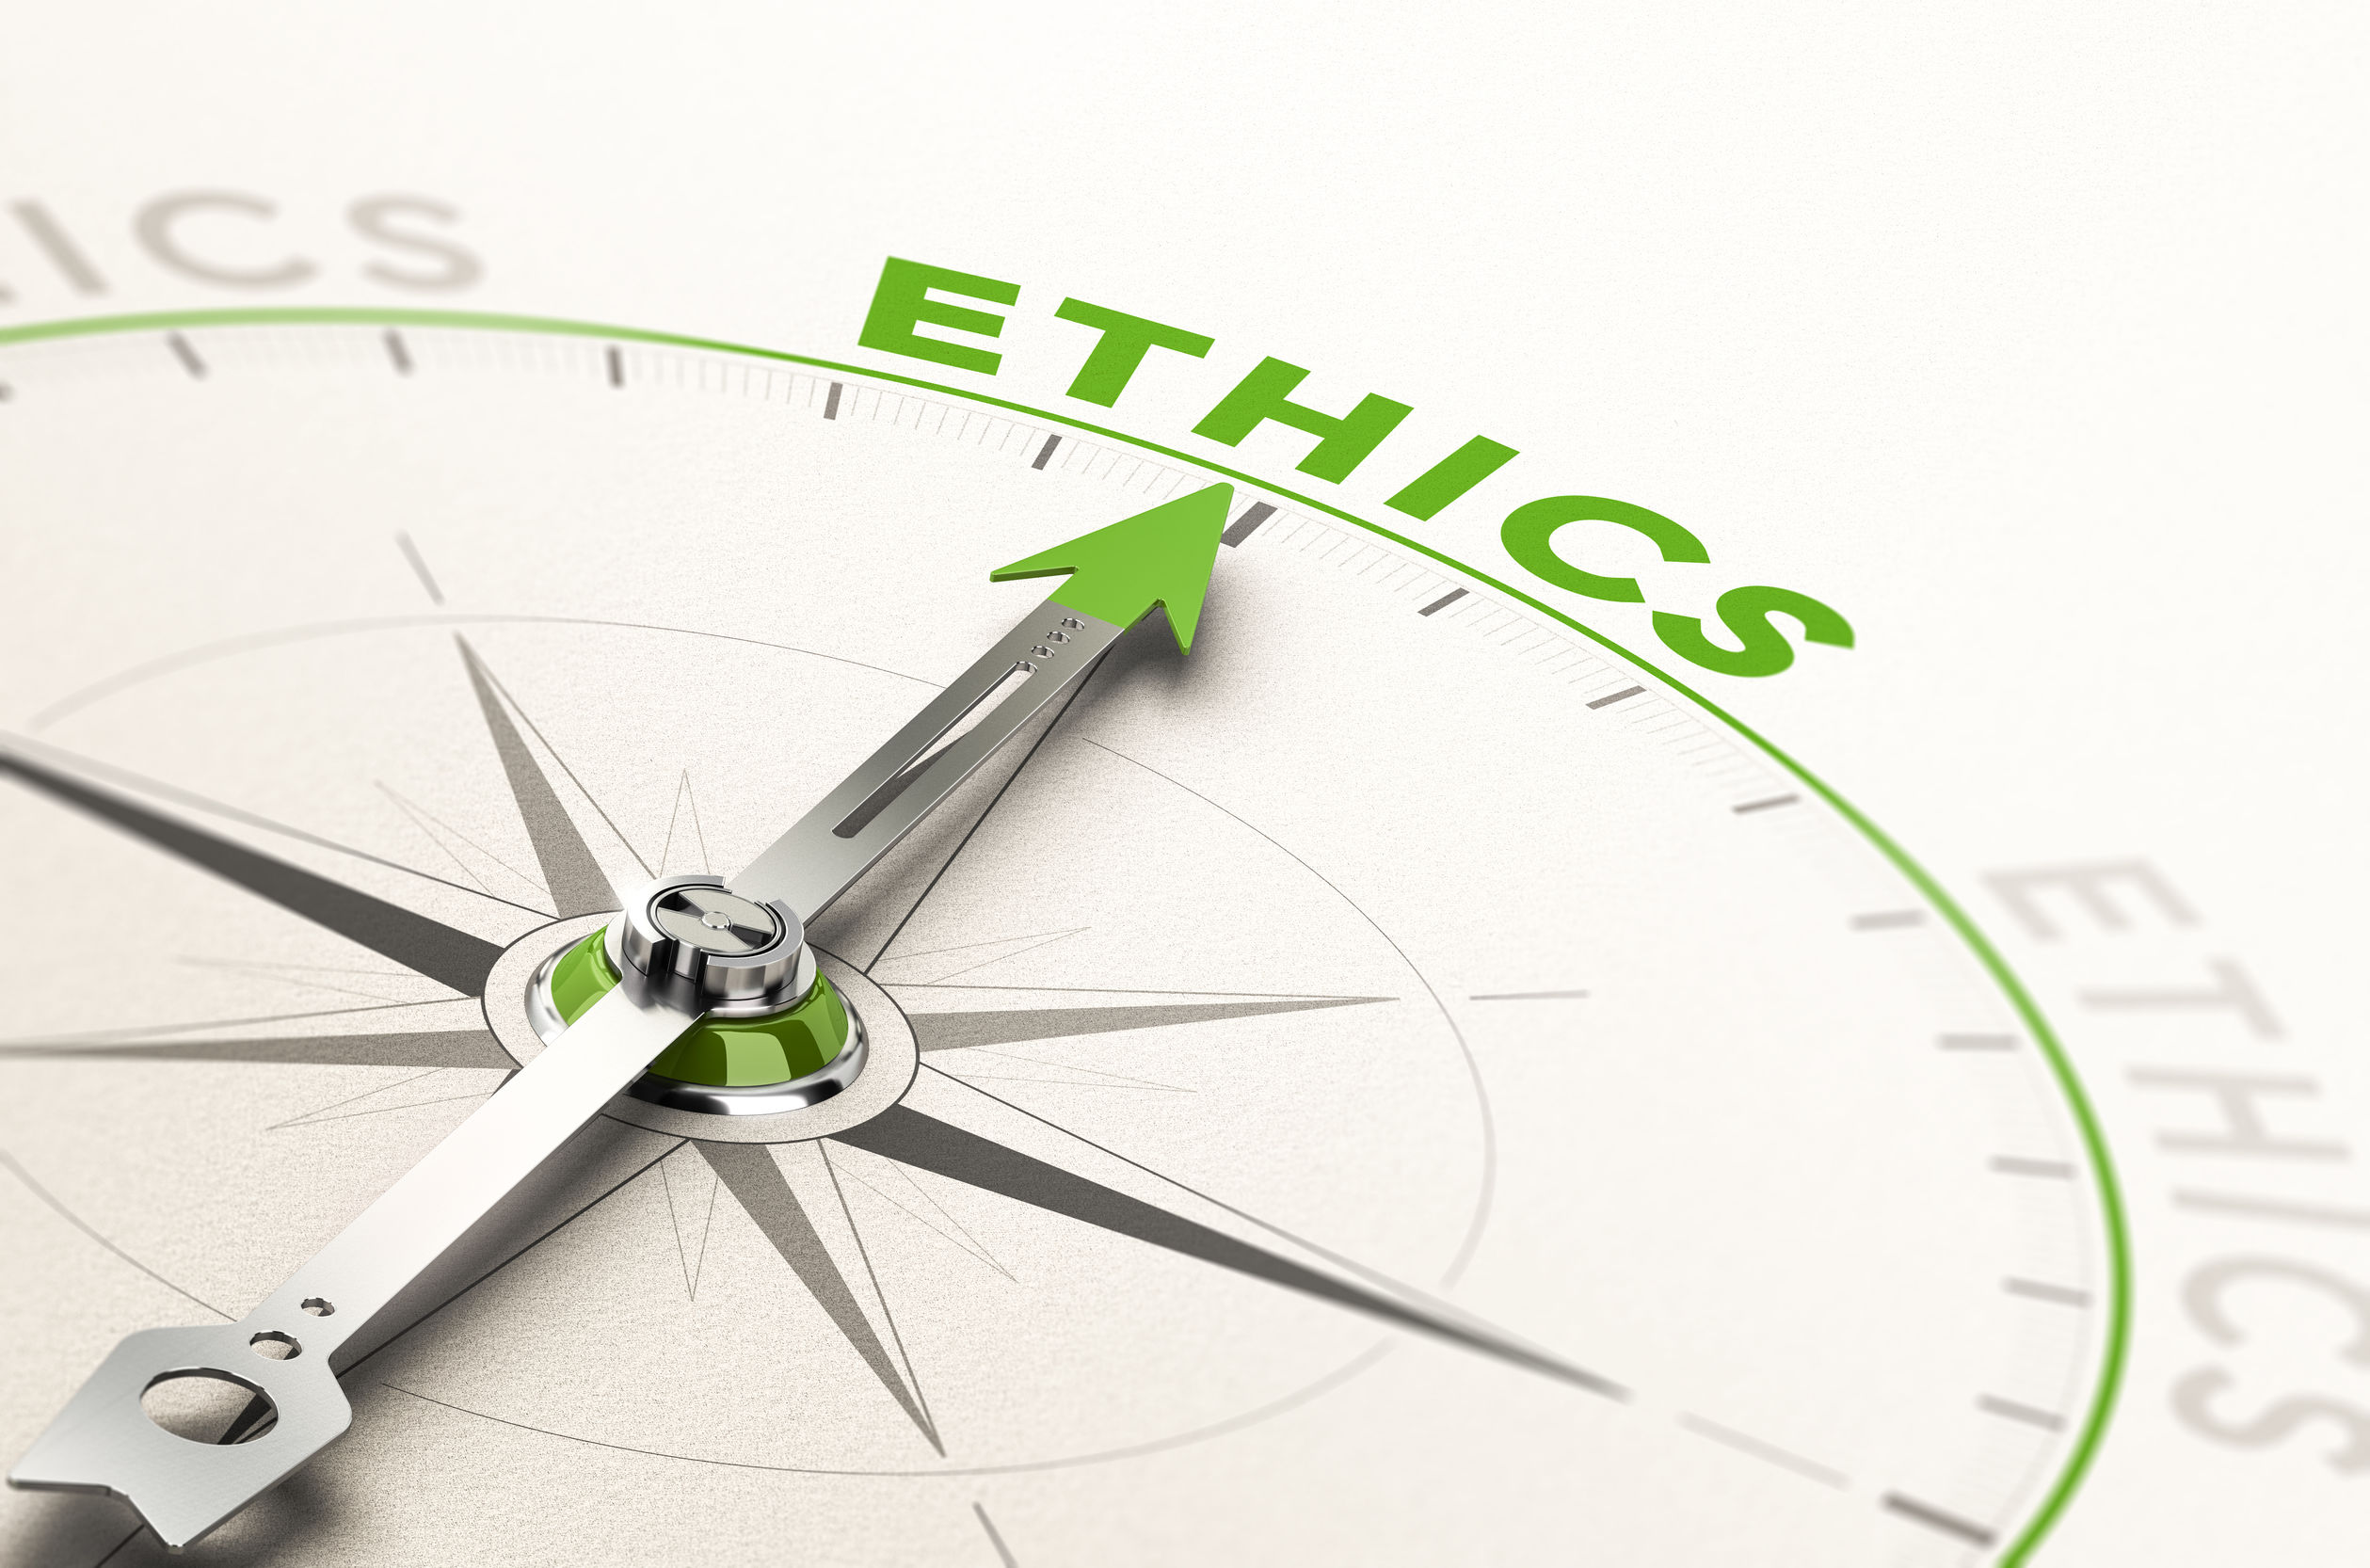 Prevent Corporate Misconduct With An Anonymous Ethics